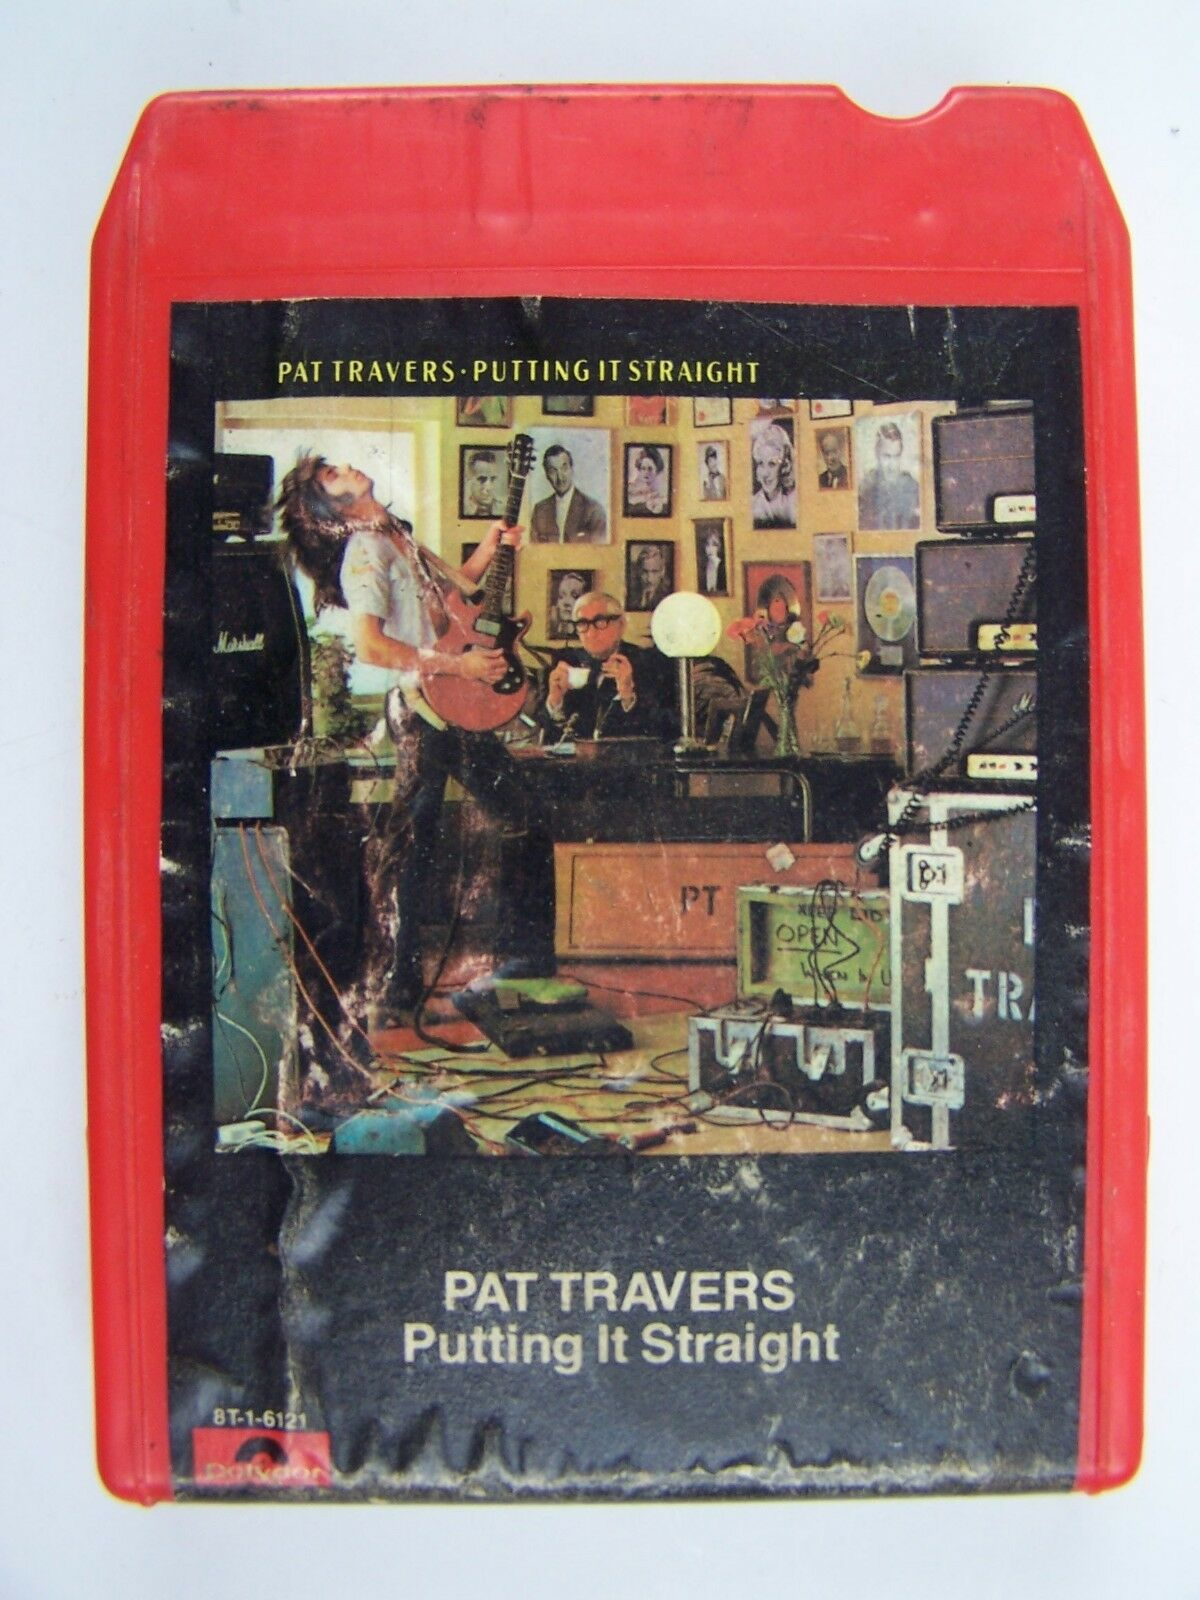 Pat Travers - Putting It Straight 8 Track Album 8T-1-61